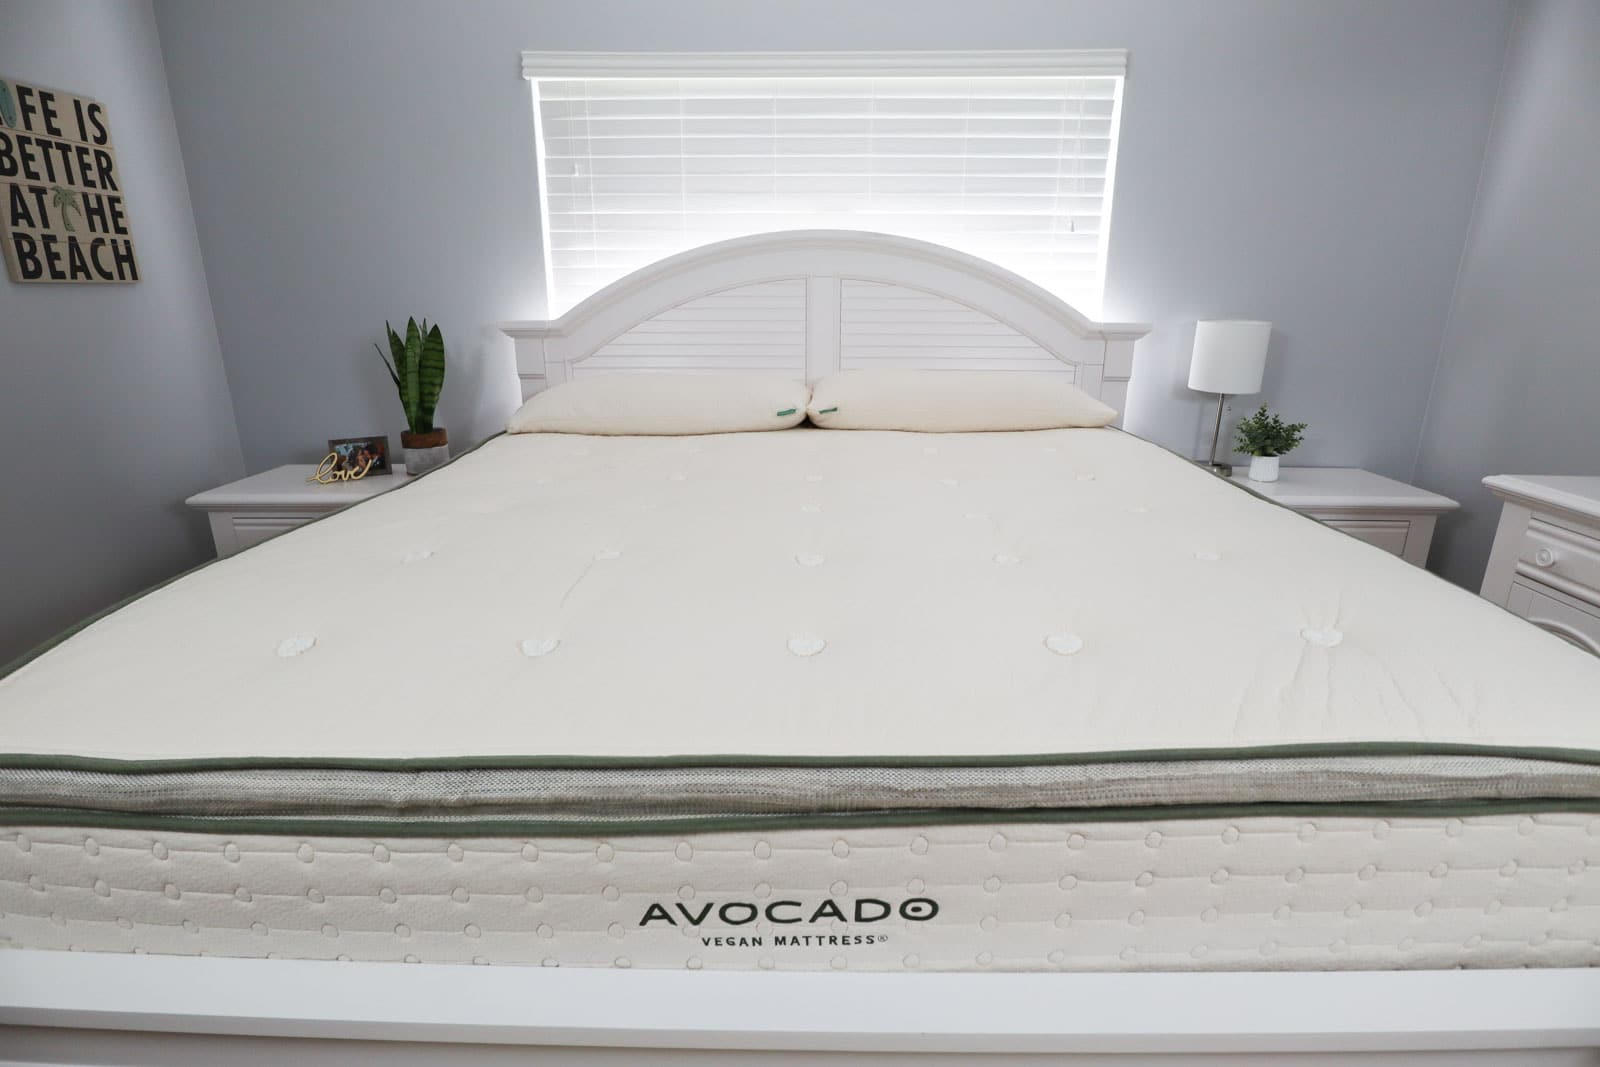 An Avocado Vegan Mattress on a white bed frame in a gray bedroom.